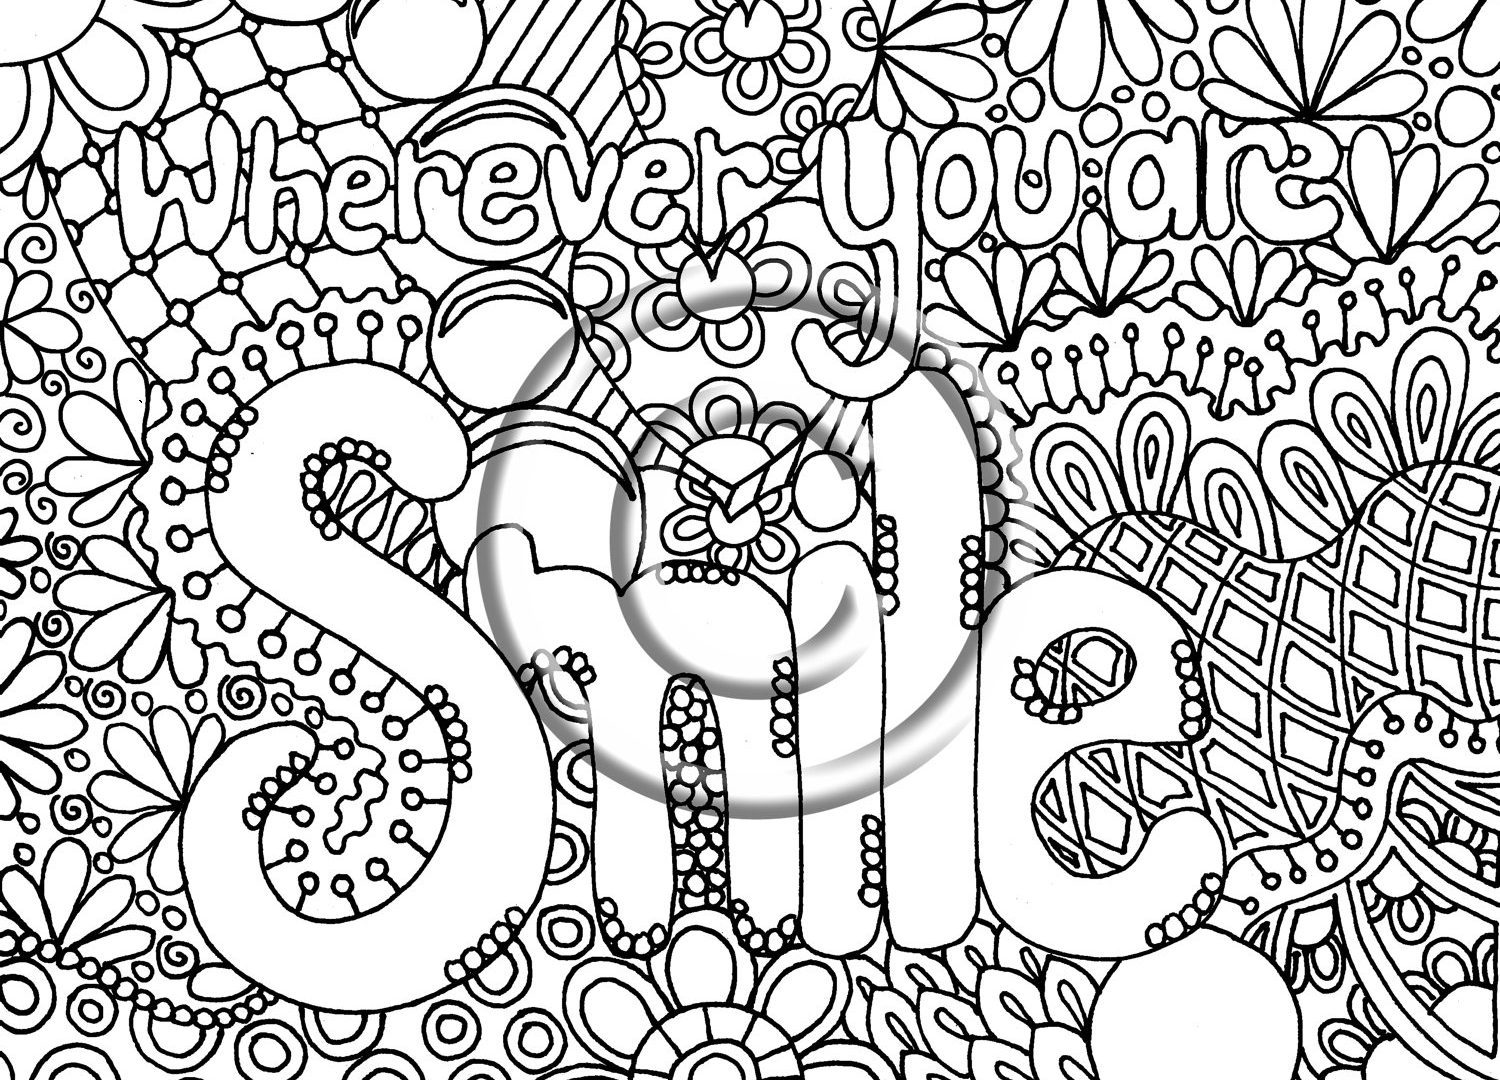 1500x1080 Free Mandala Designs Tointintable Mexican Folk Art Coloring Pages